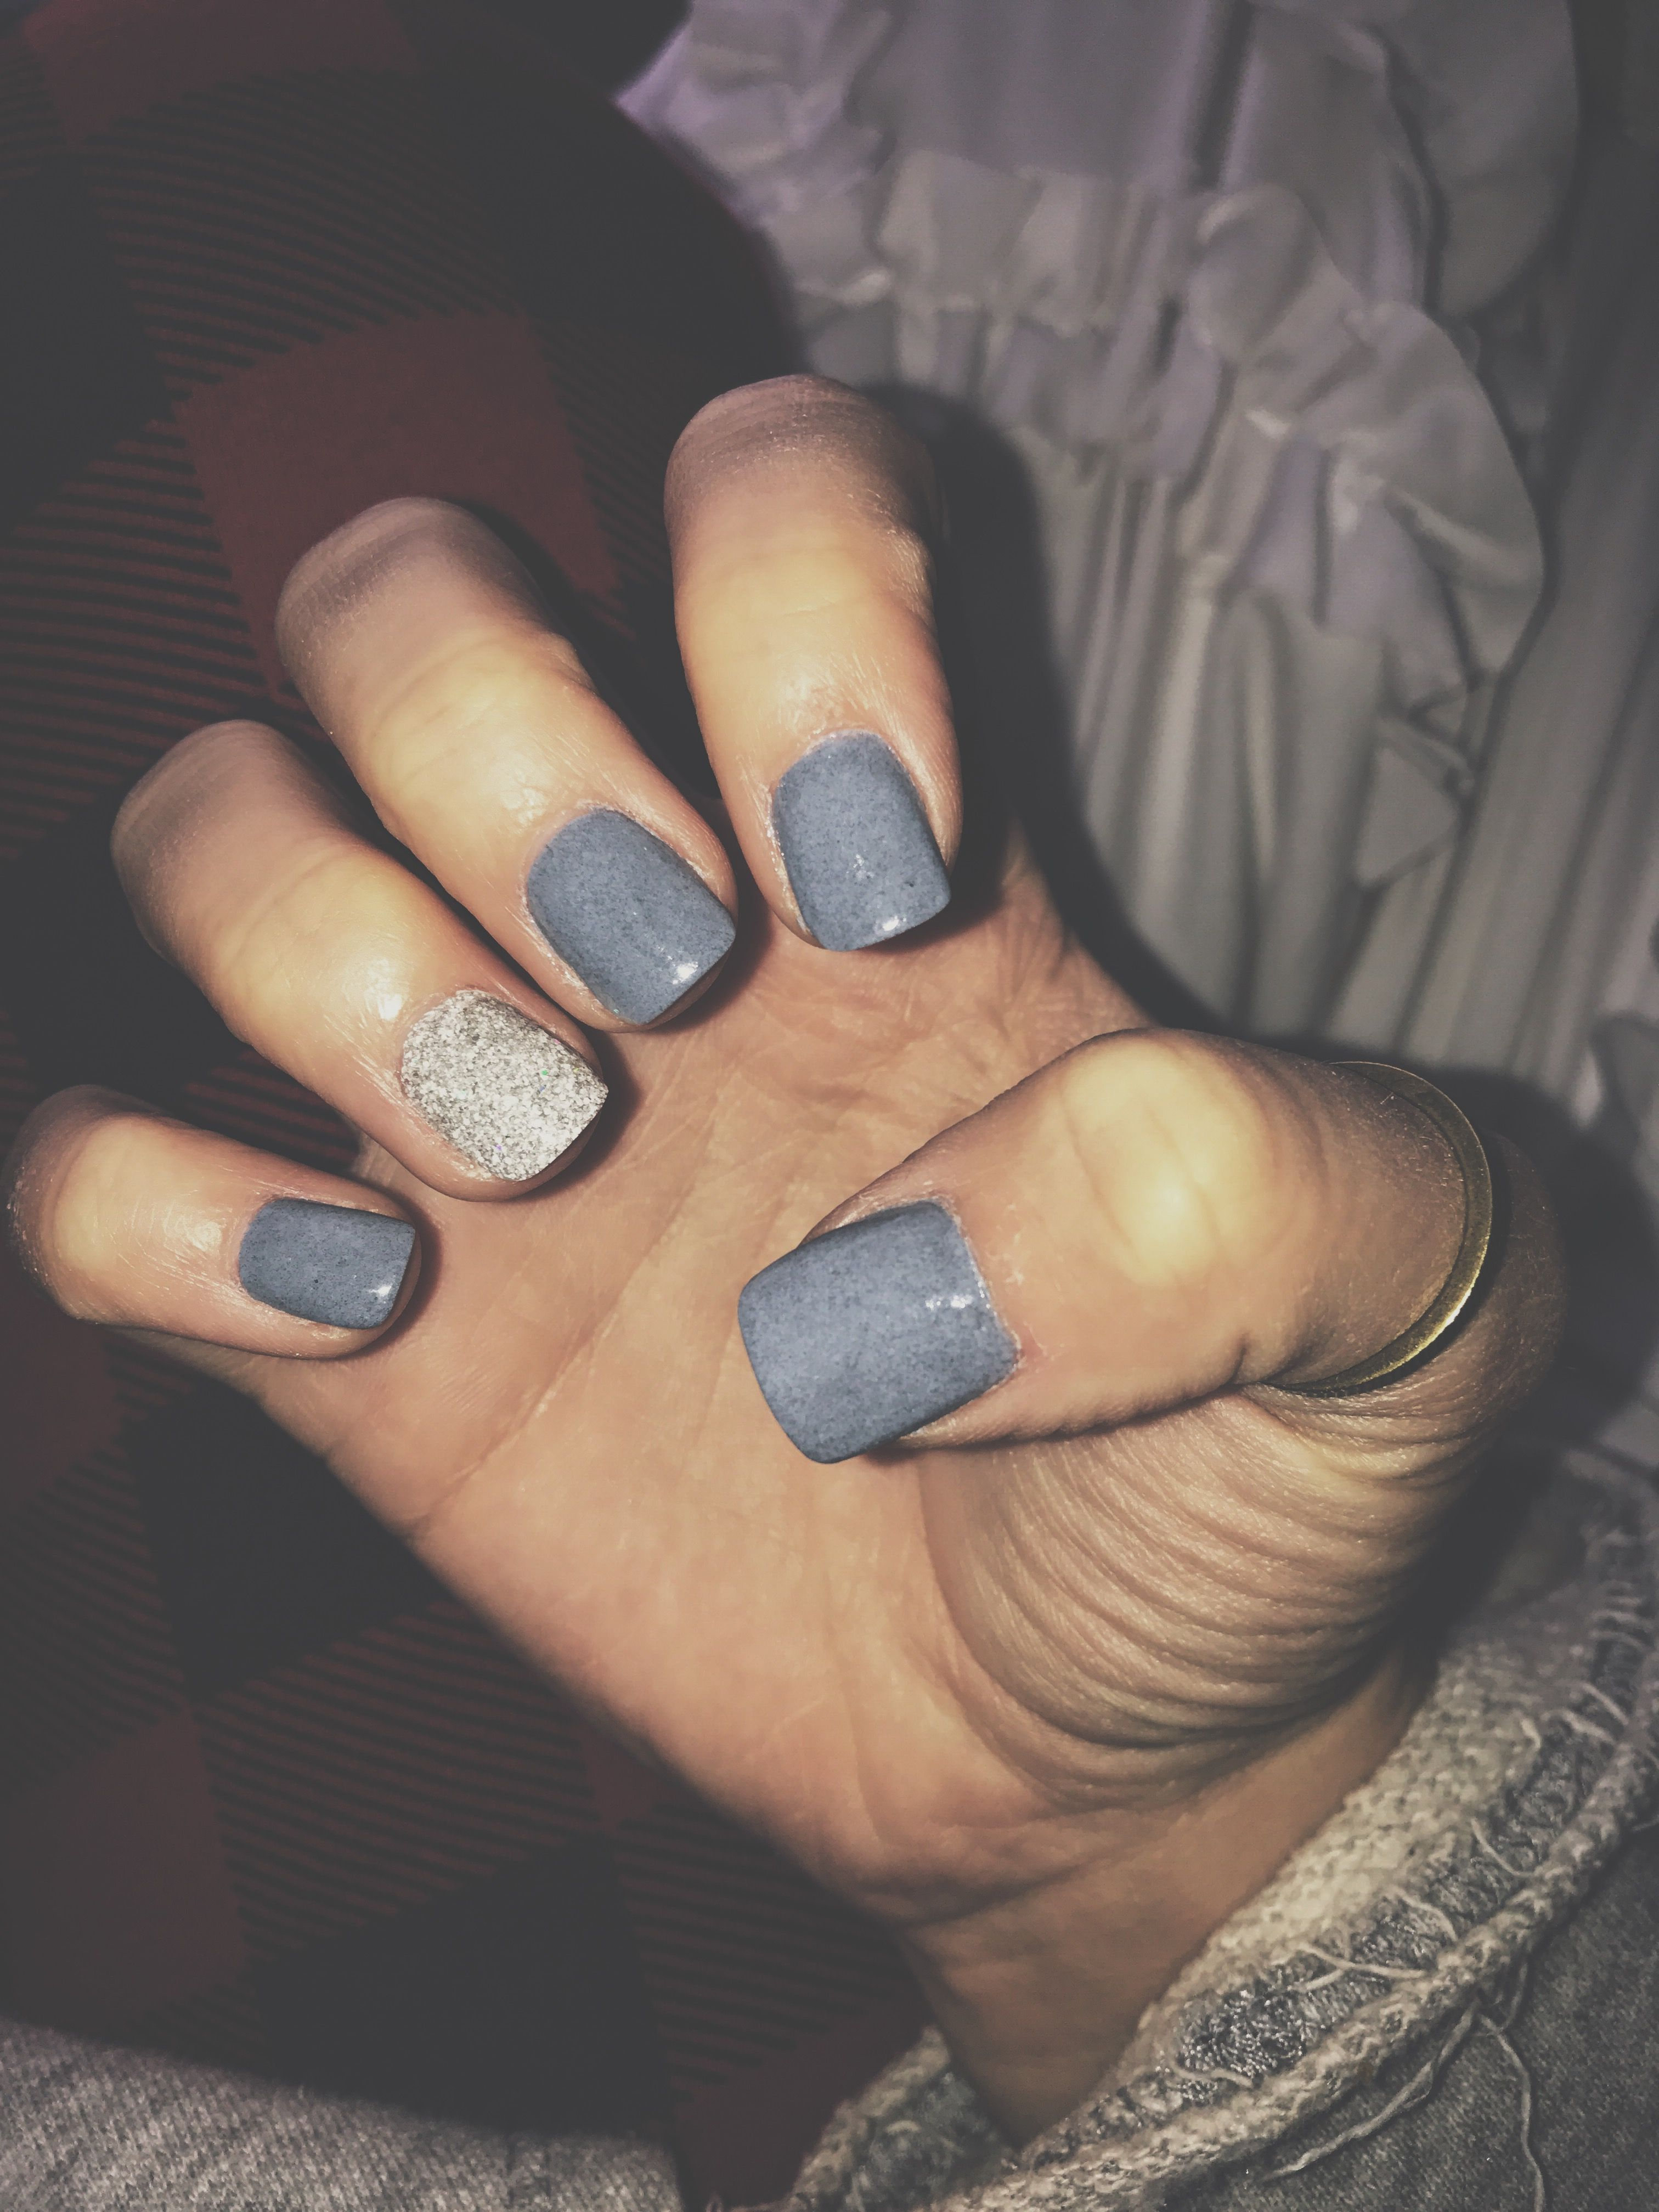 Short Acrylic Winter Nails Fall Nails Grey Acrylics Fall Acrylic Nails Short Coffin Nails Best Acrylic Nails